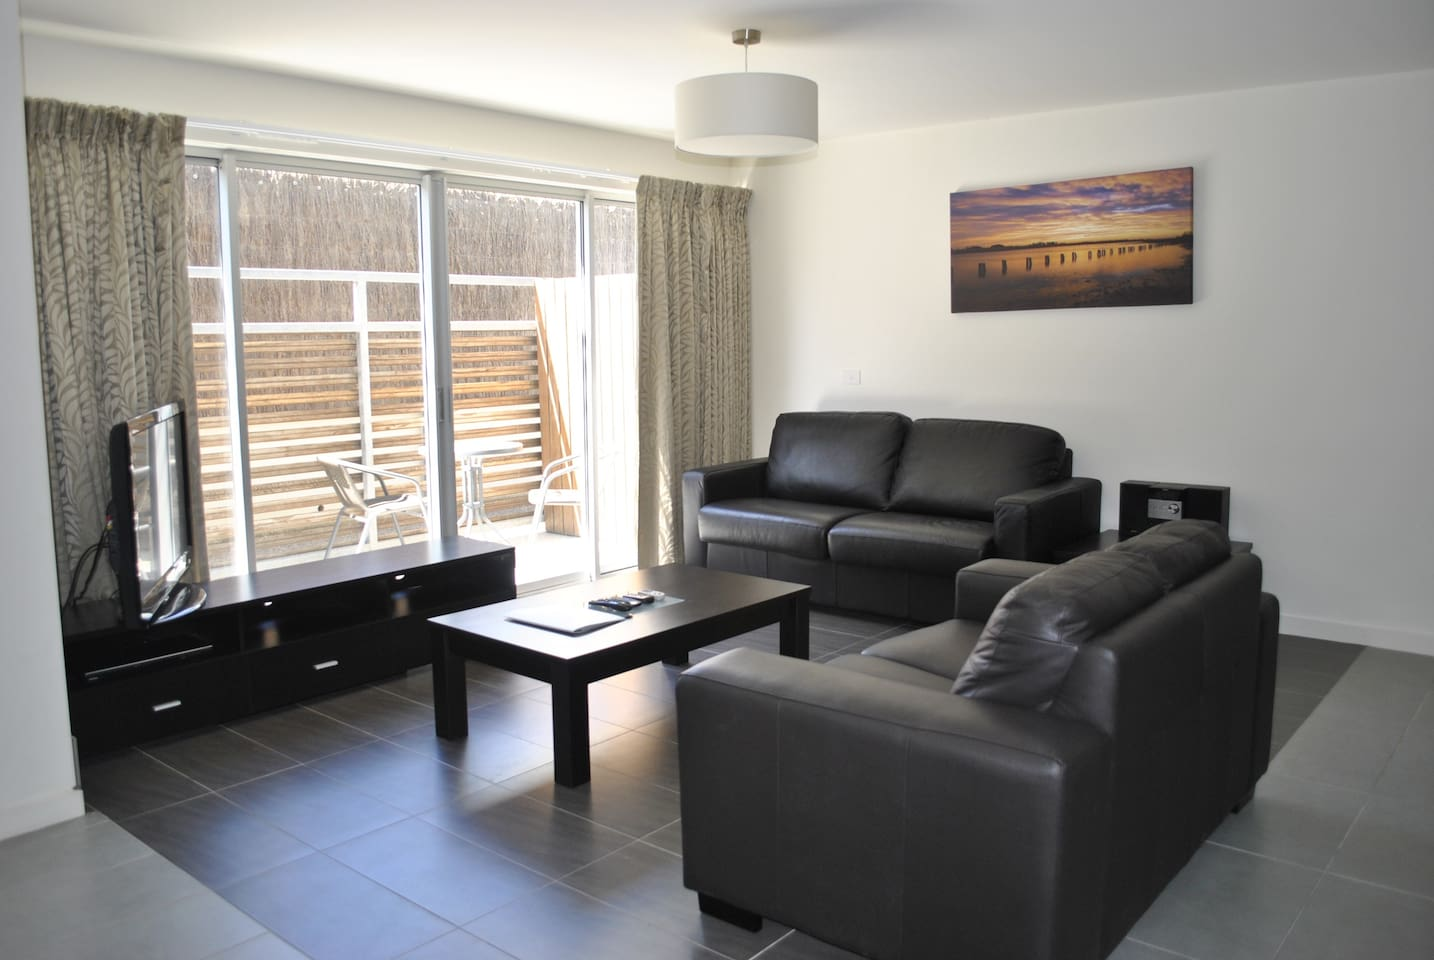 Large living room with double sofa bed for extra guests